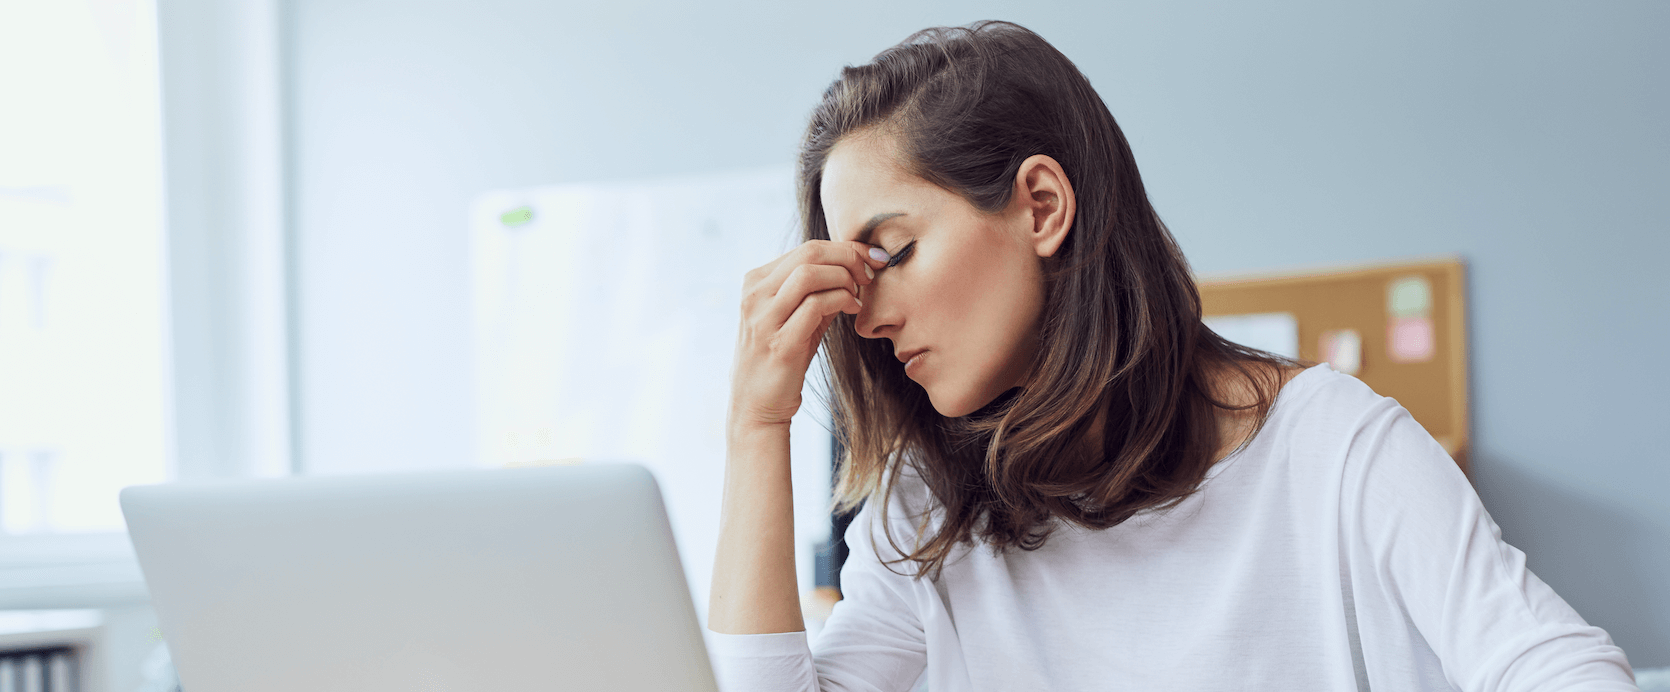 Persistent Stress-Related Headaches